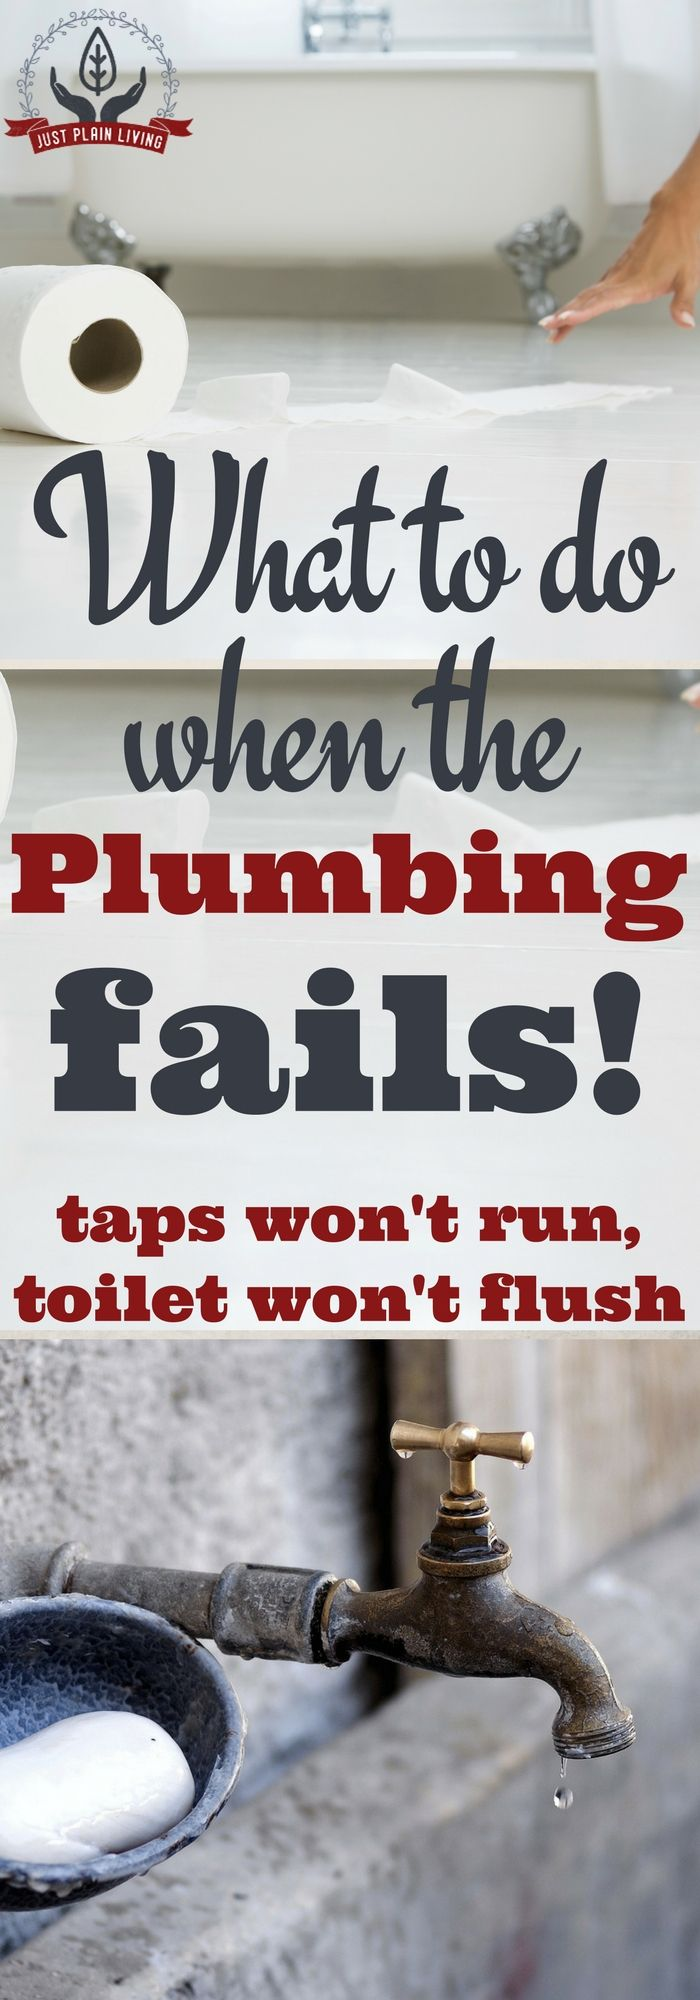 What To Do When The Plumbing Fails https://justplainmarie.ca/what-to-do-when-plumbing-fails/At?utm_campaign=coschedule&utm_source=pinterest&utm_medium=Just%20Plain%20Marie%20-%20Sustainable%2C%20Self%20Reliant%20Living&utm_content=What%20To%20Do%20When%20The%20Plumbing%20Fails some point, the faucets are dry and the toilet won't flush. Whether it's a backed up septic system or a problem with the water main, it happens. What to do?